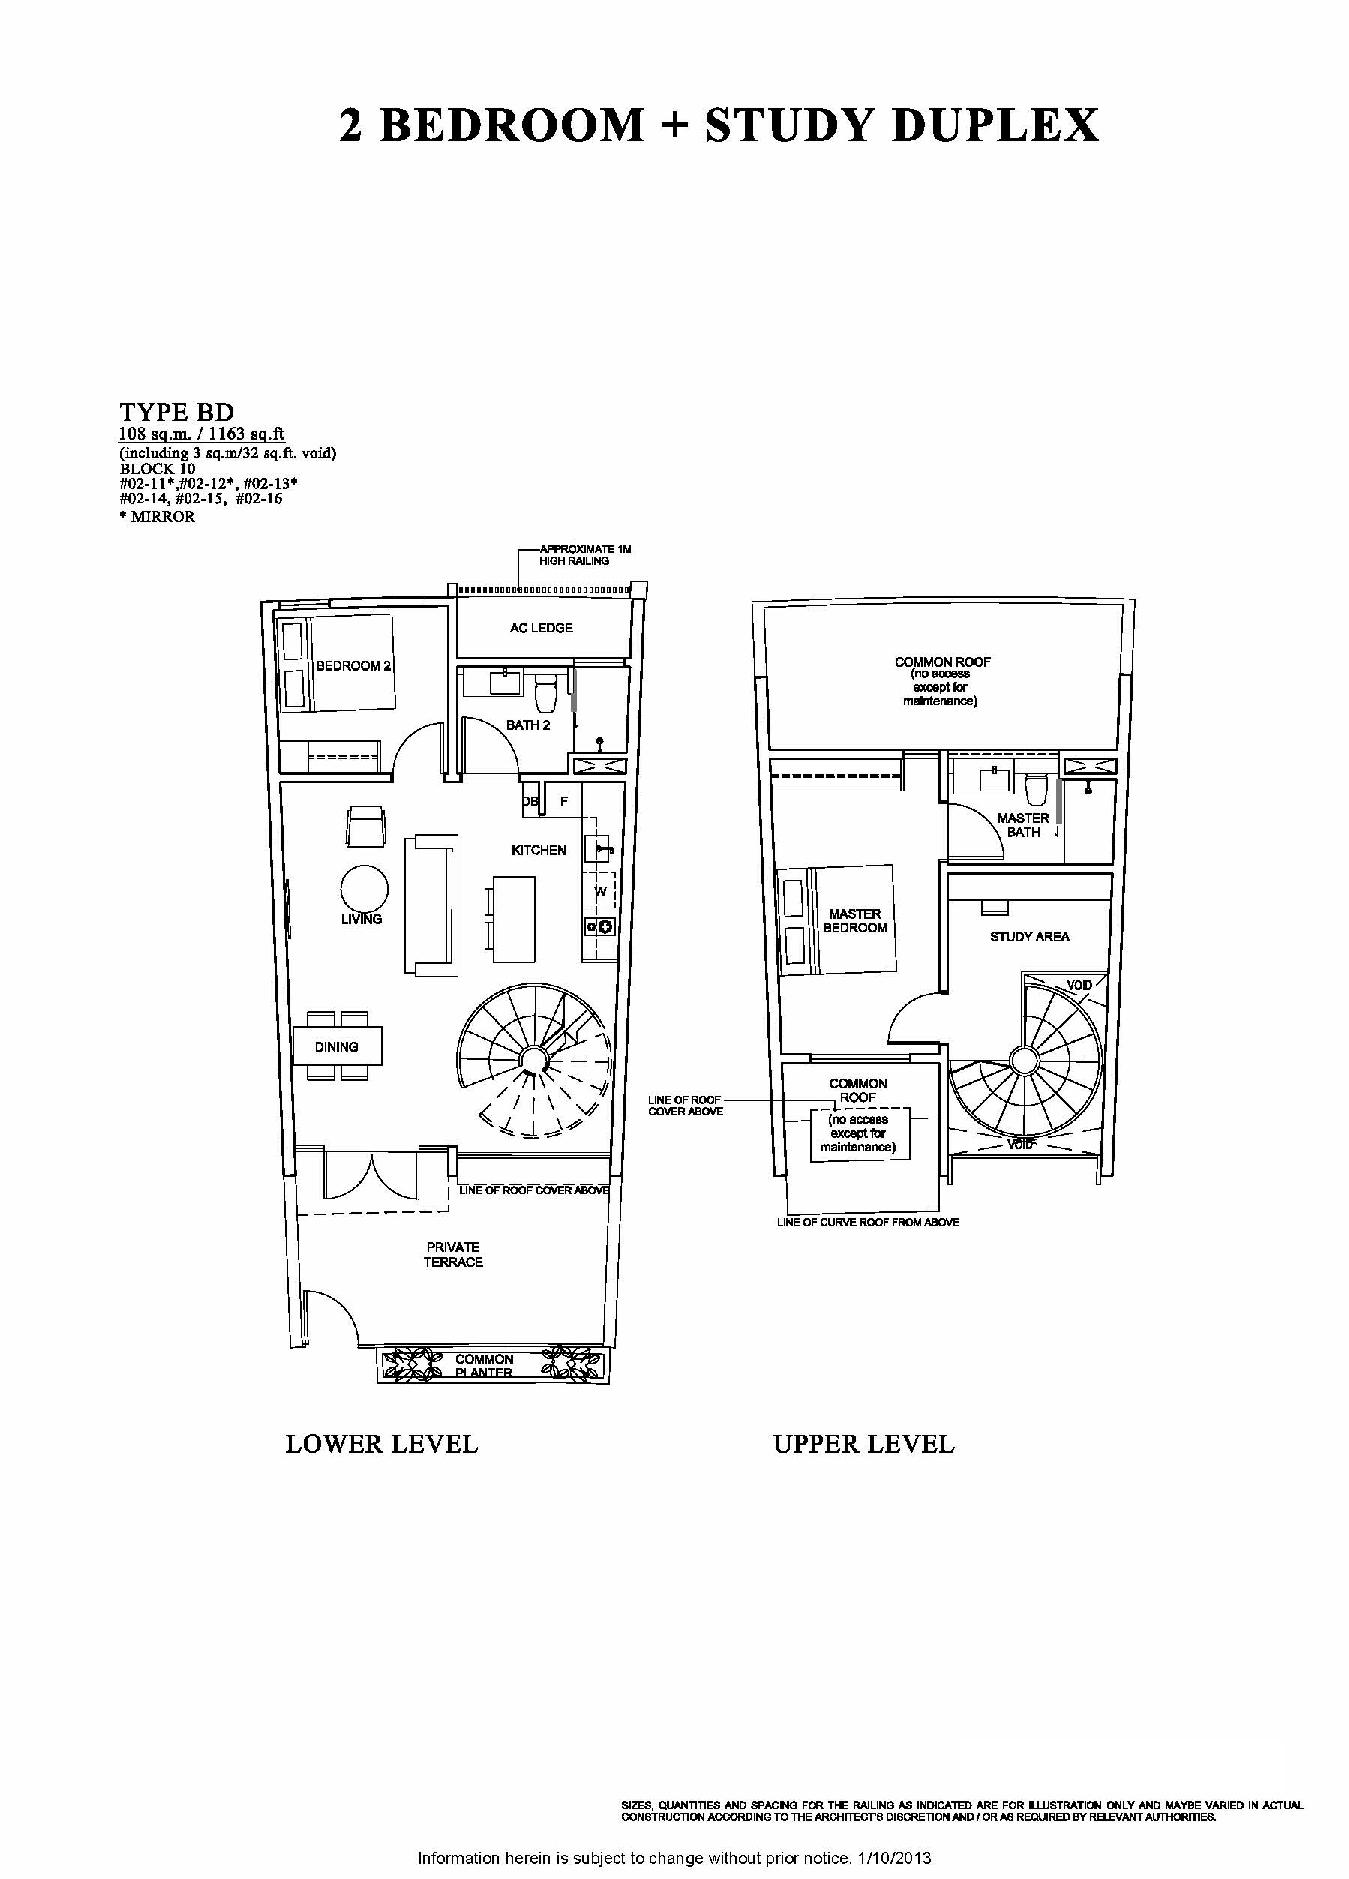 The Venue Residences 2 Bedroom + Study Duplex Floor Plan Type BD